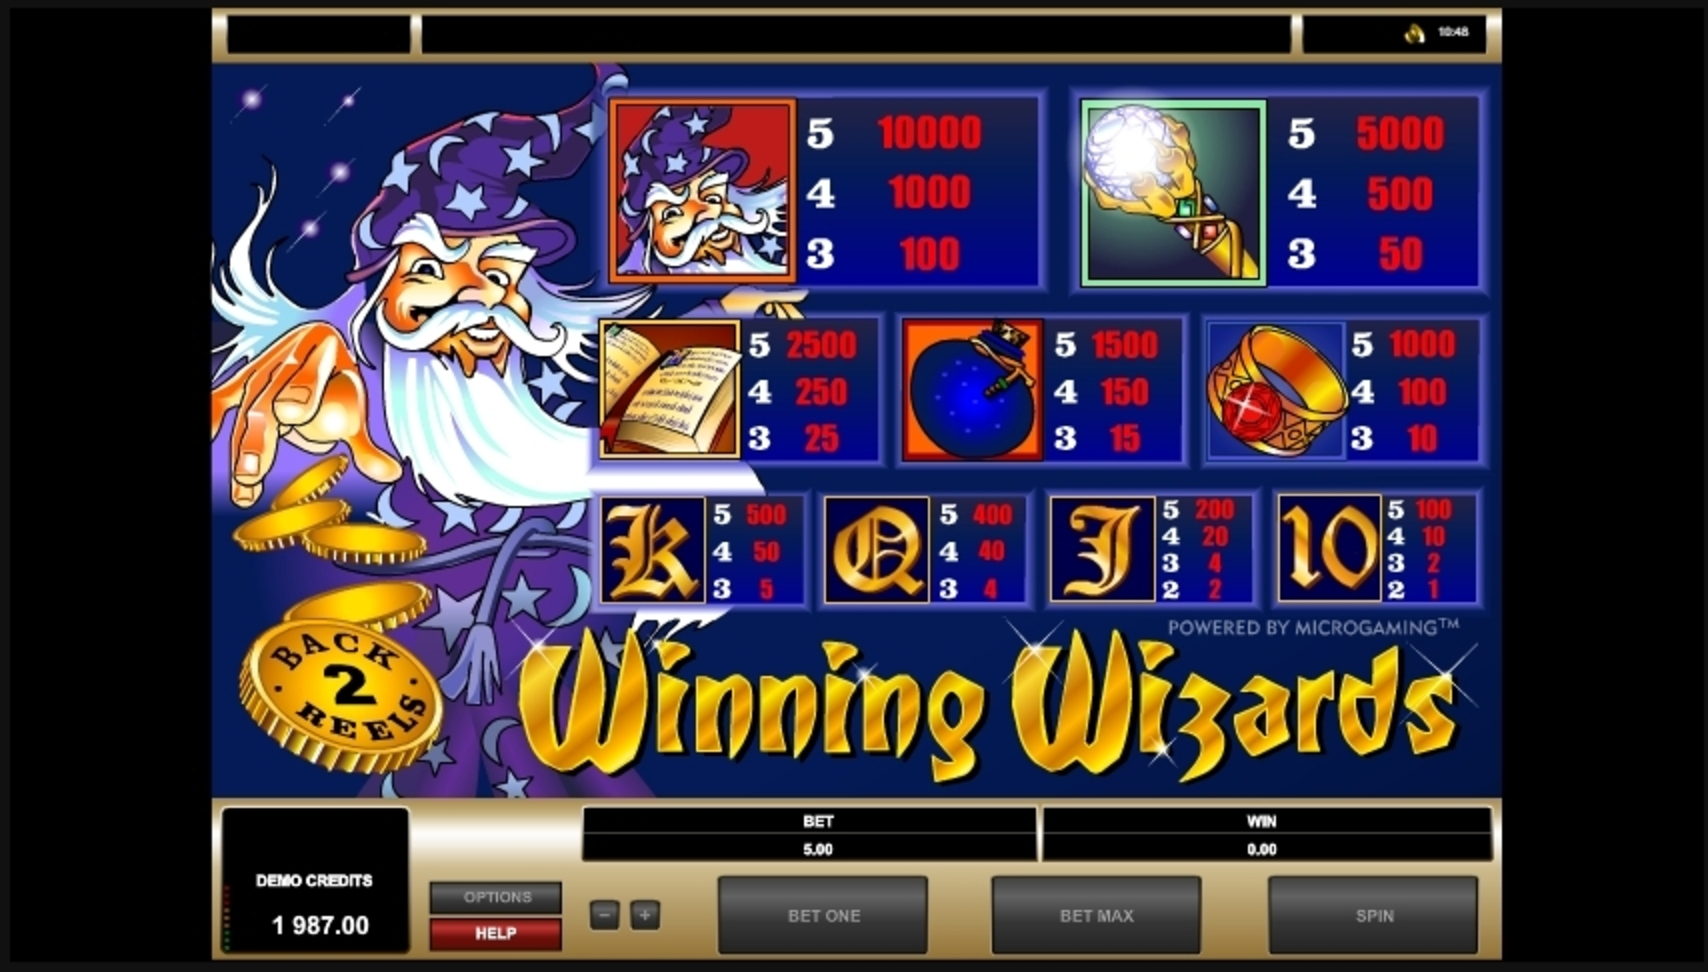 Info of Winning Wizards Slot Game by Microgaming